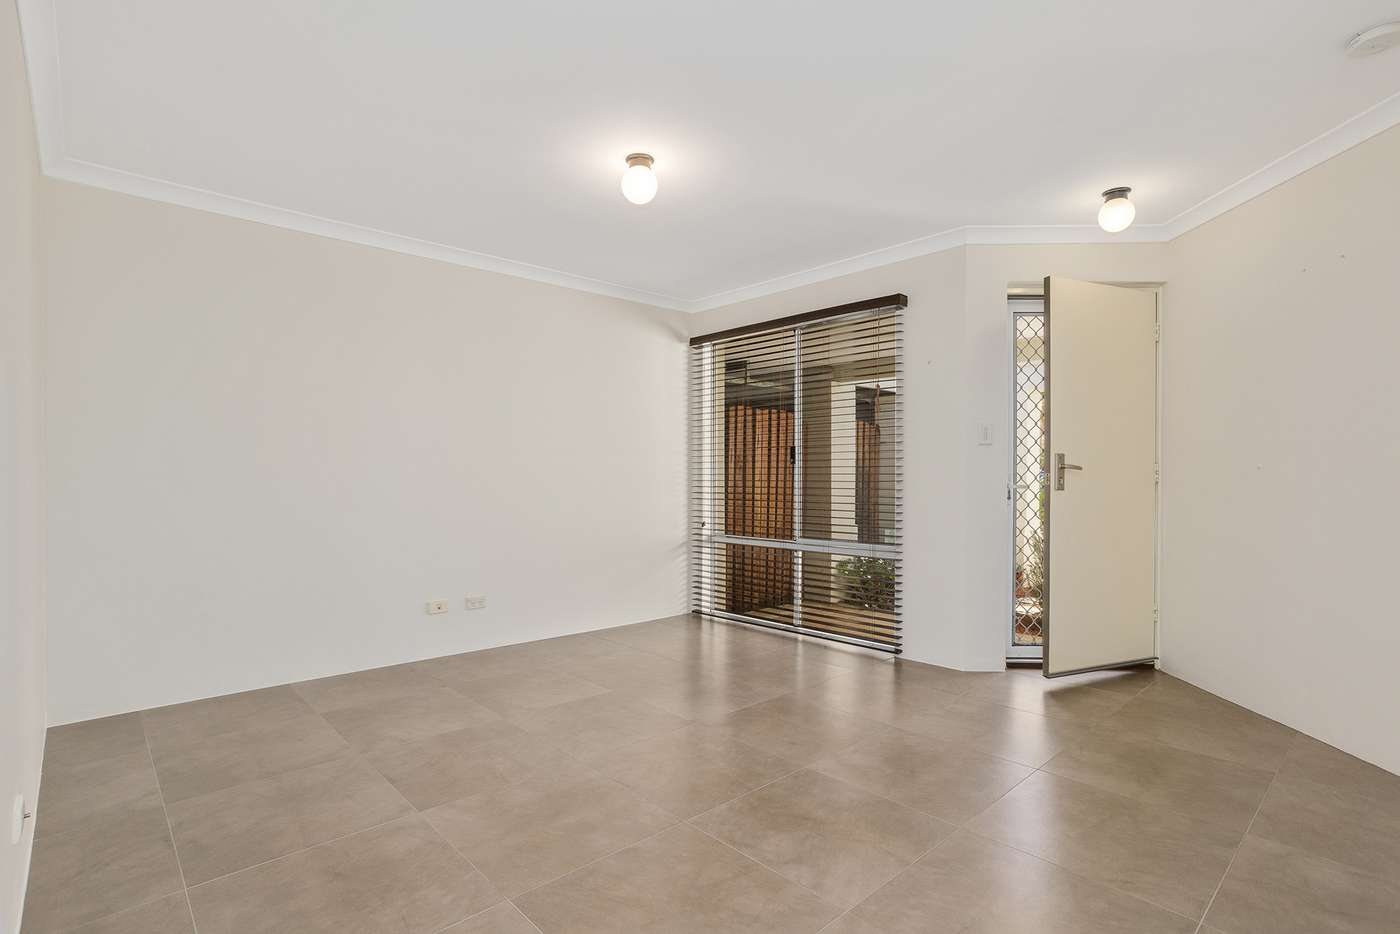 Sixth view of Homely house listing, 9 Mulwarrie Circle, Wanneroo WA 6065